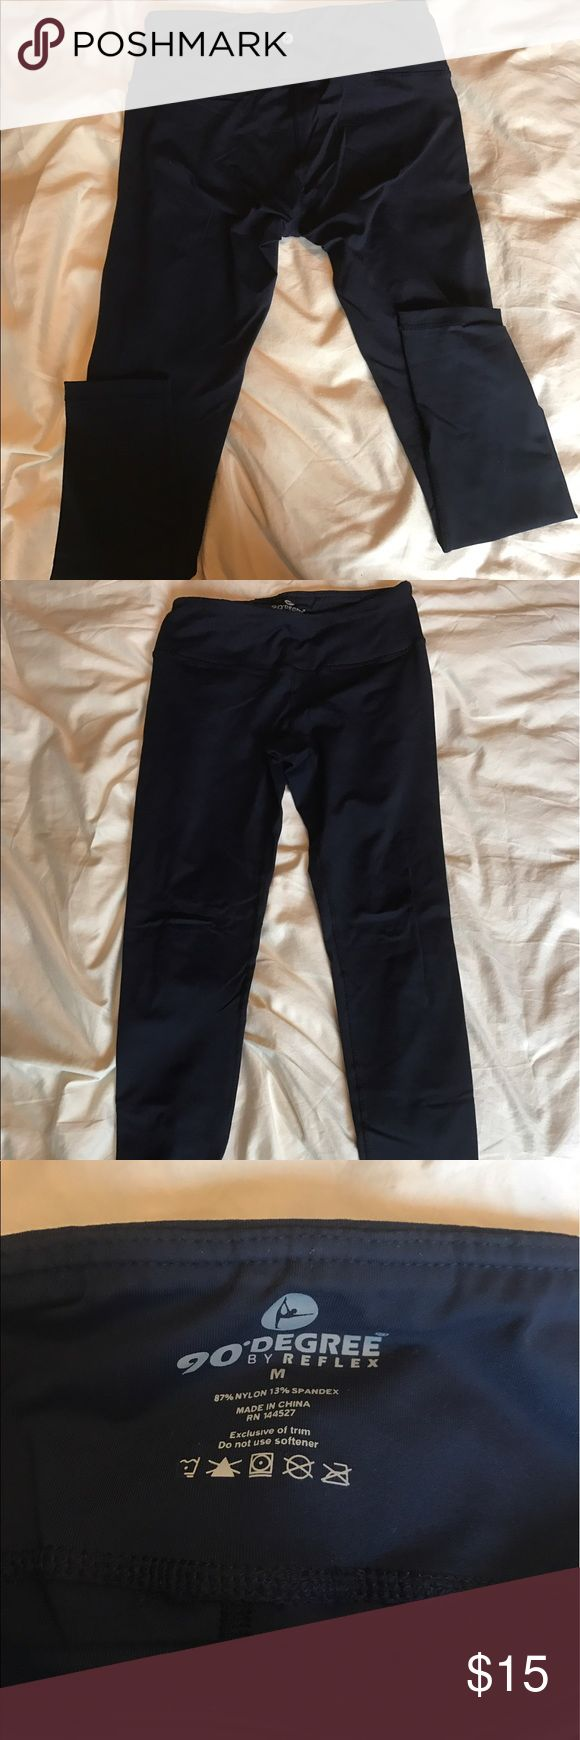 EUC 90 Degrees by Reflex navy legging Excellent condition navy leggings. Has a great thick waist band that keeps your tummy tucked in. 90 Degrees by Reflex Pants Leggings